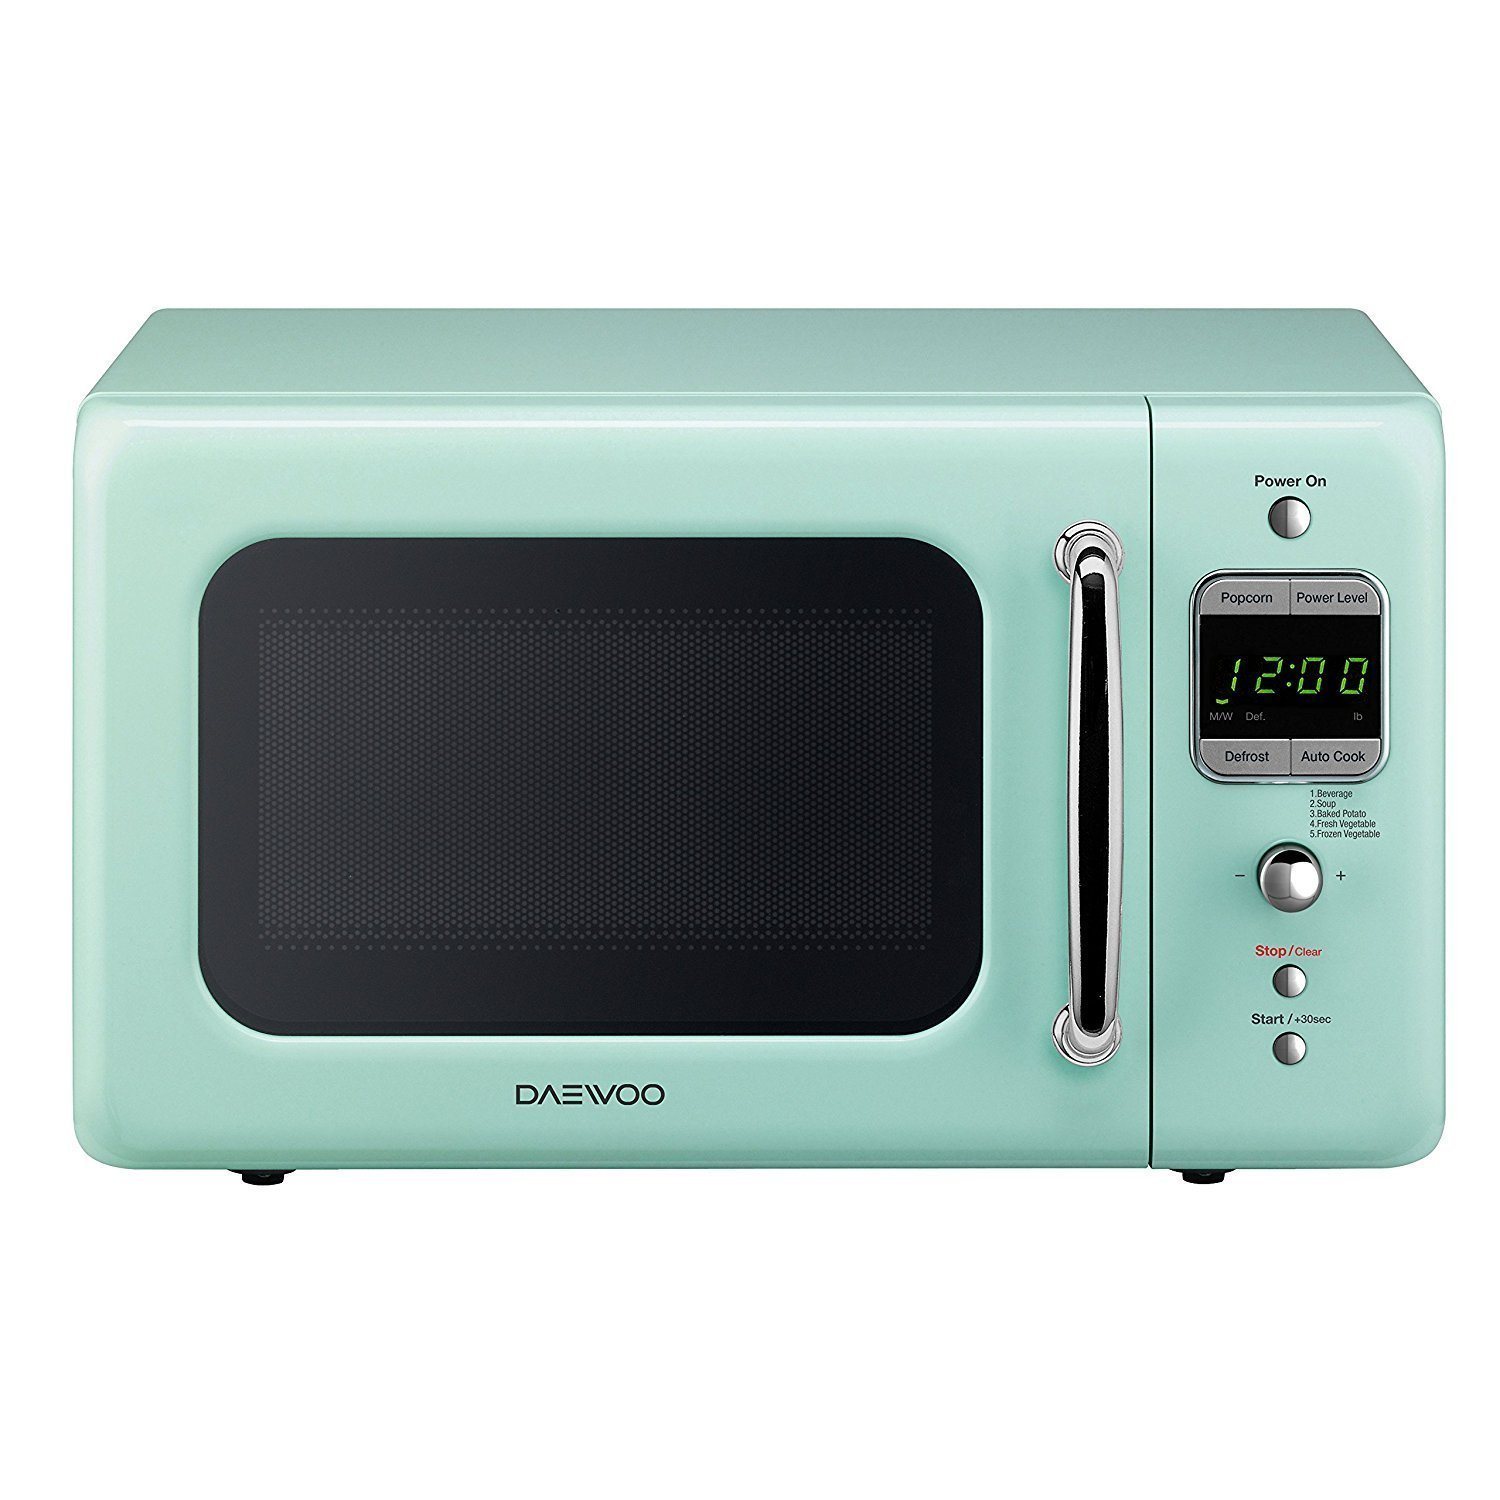 Daewoo KOR-7LREW Retro Countertop Microwave Oven 0.7 Cu. Ft, 700W | Cream White